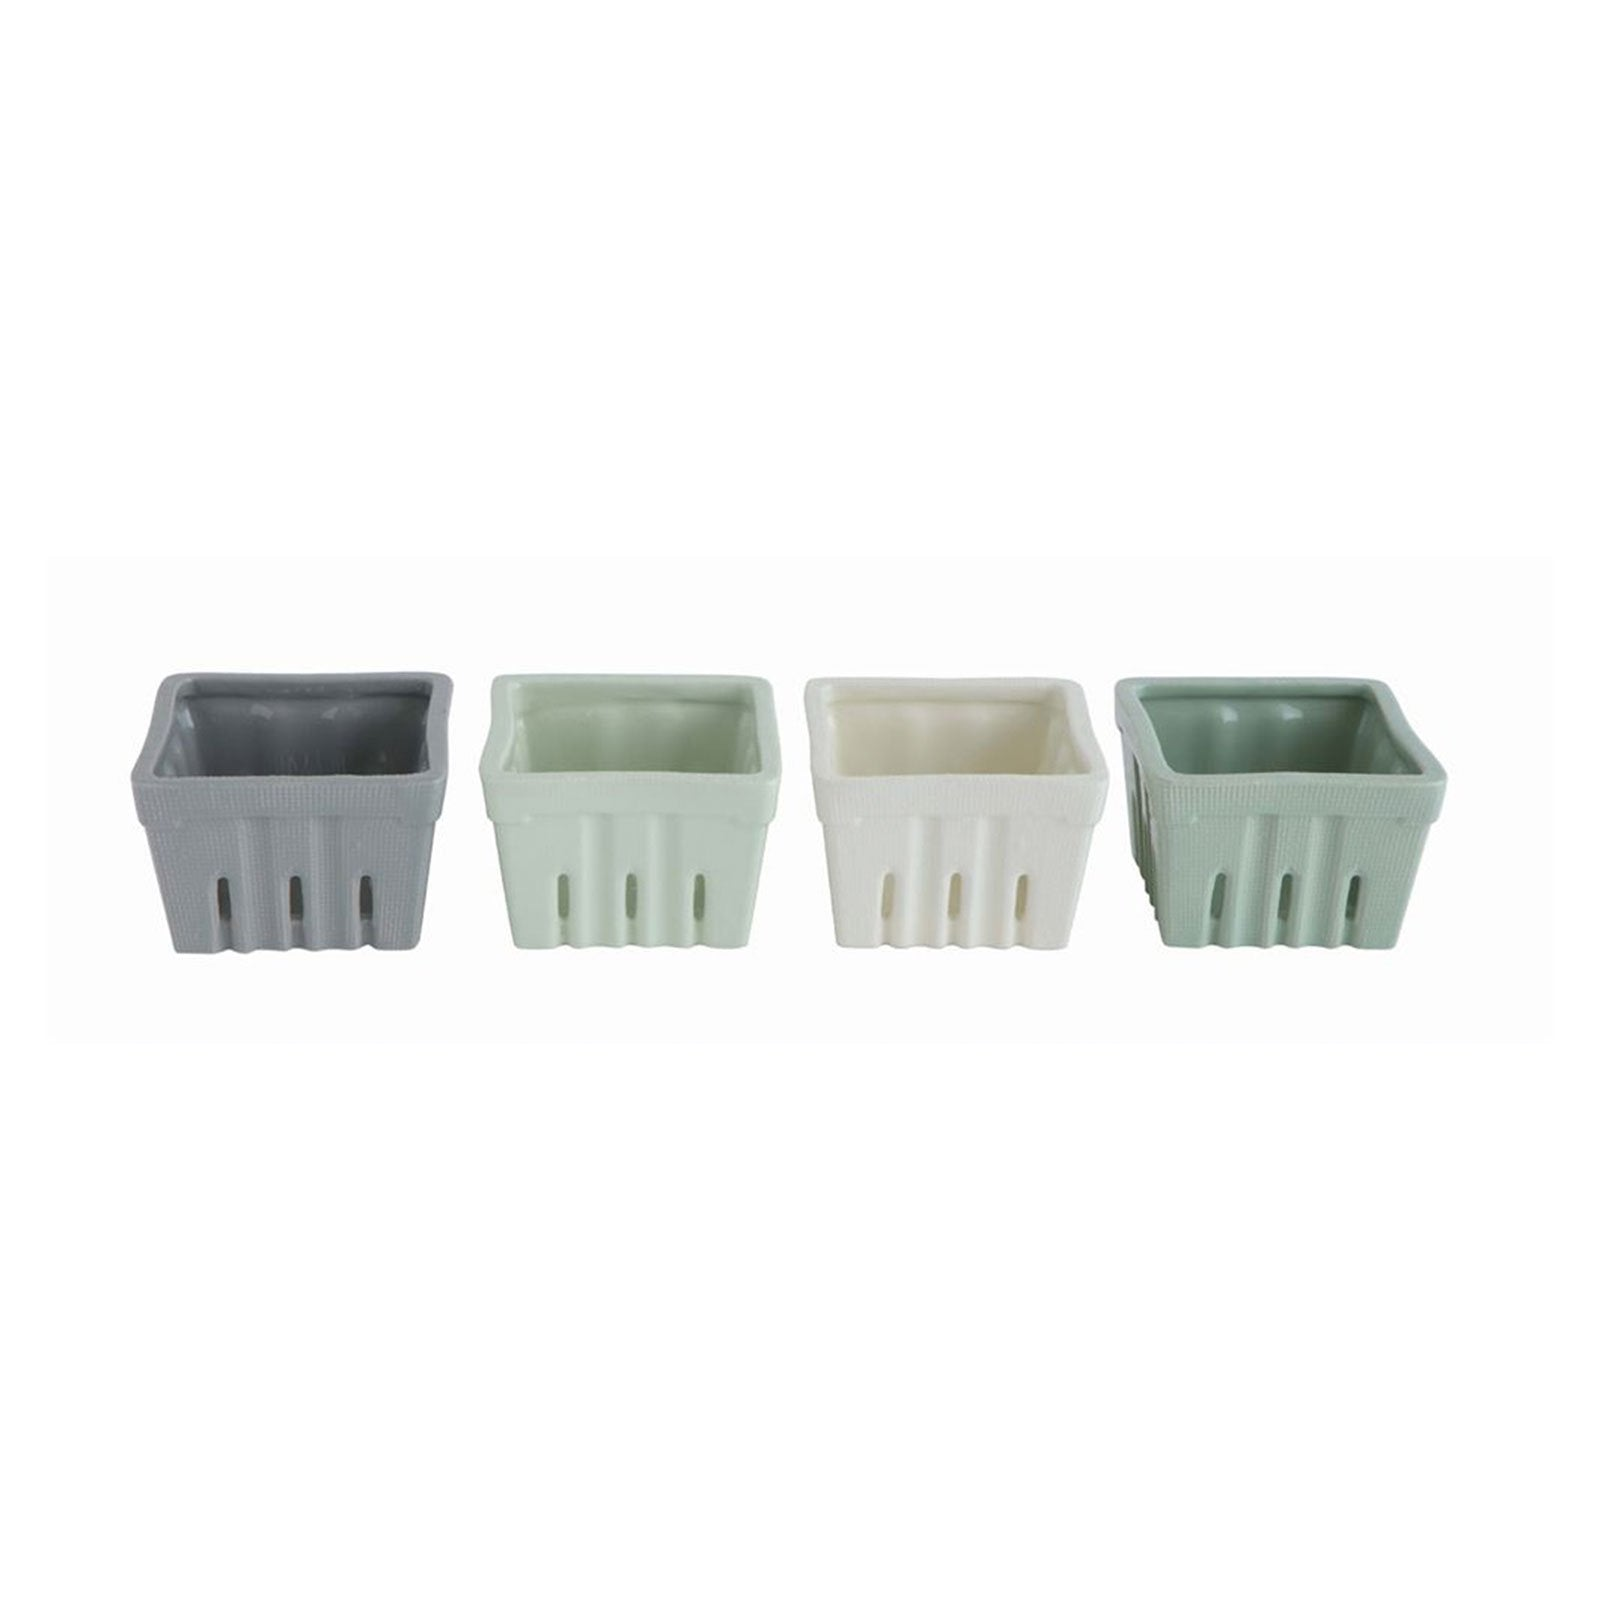 Ceramic Berry Container Set of 4